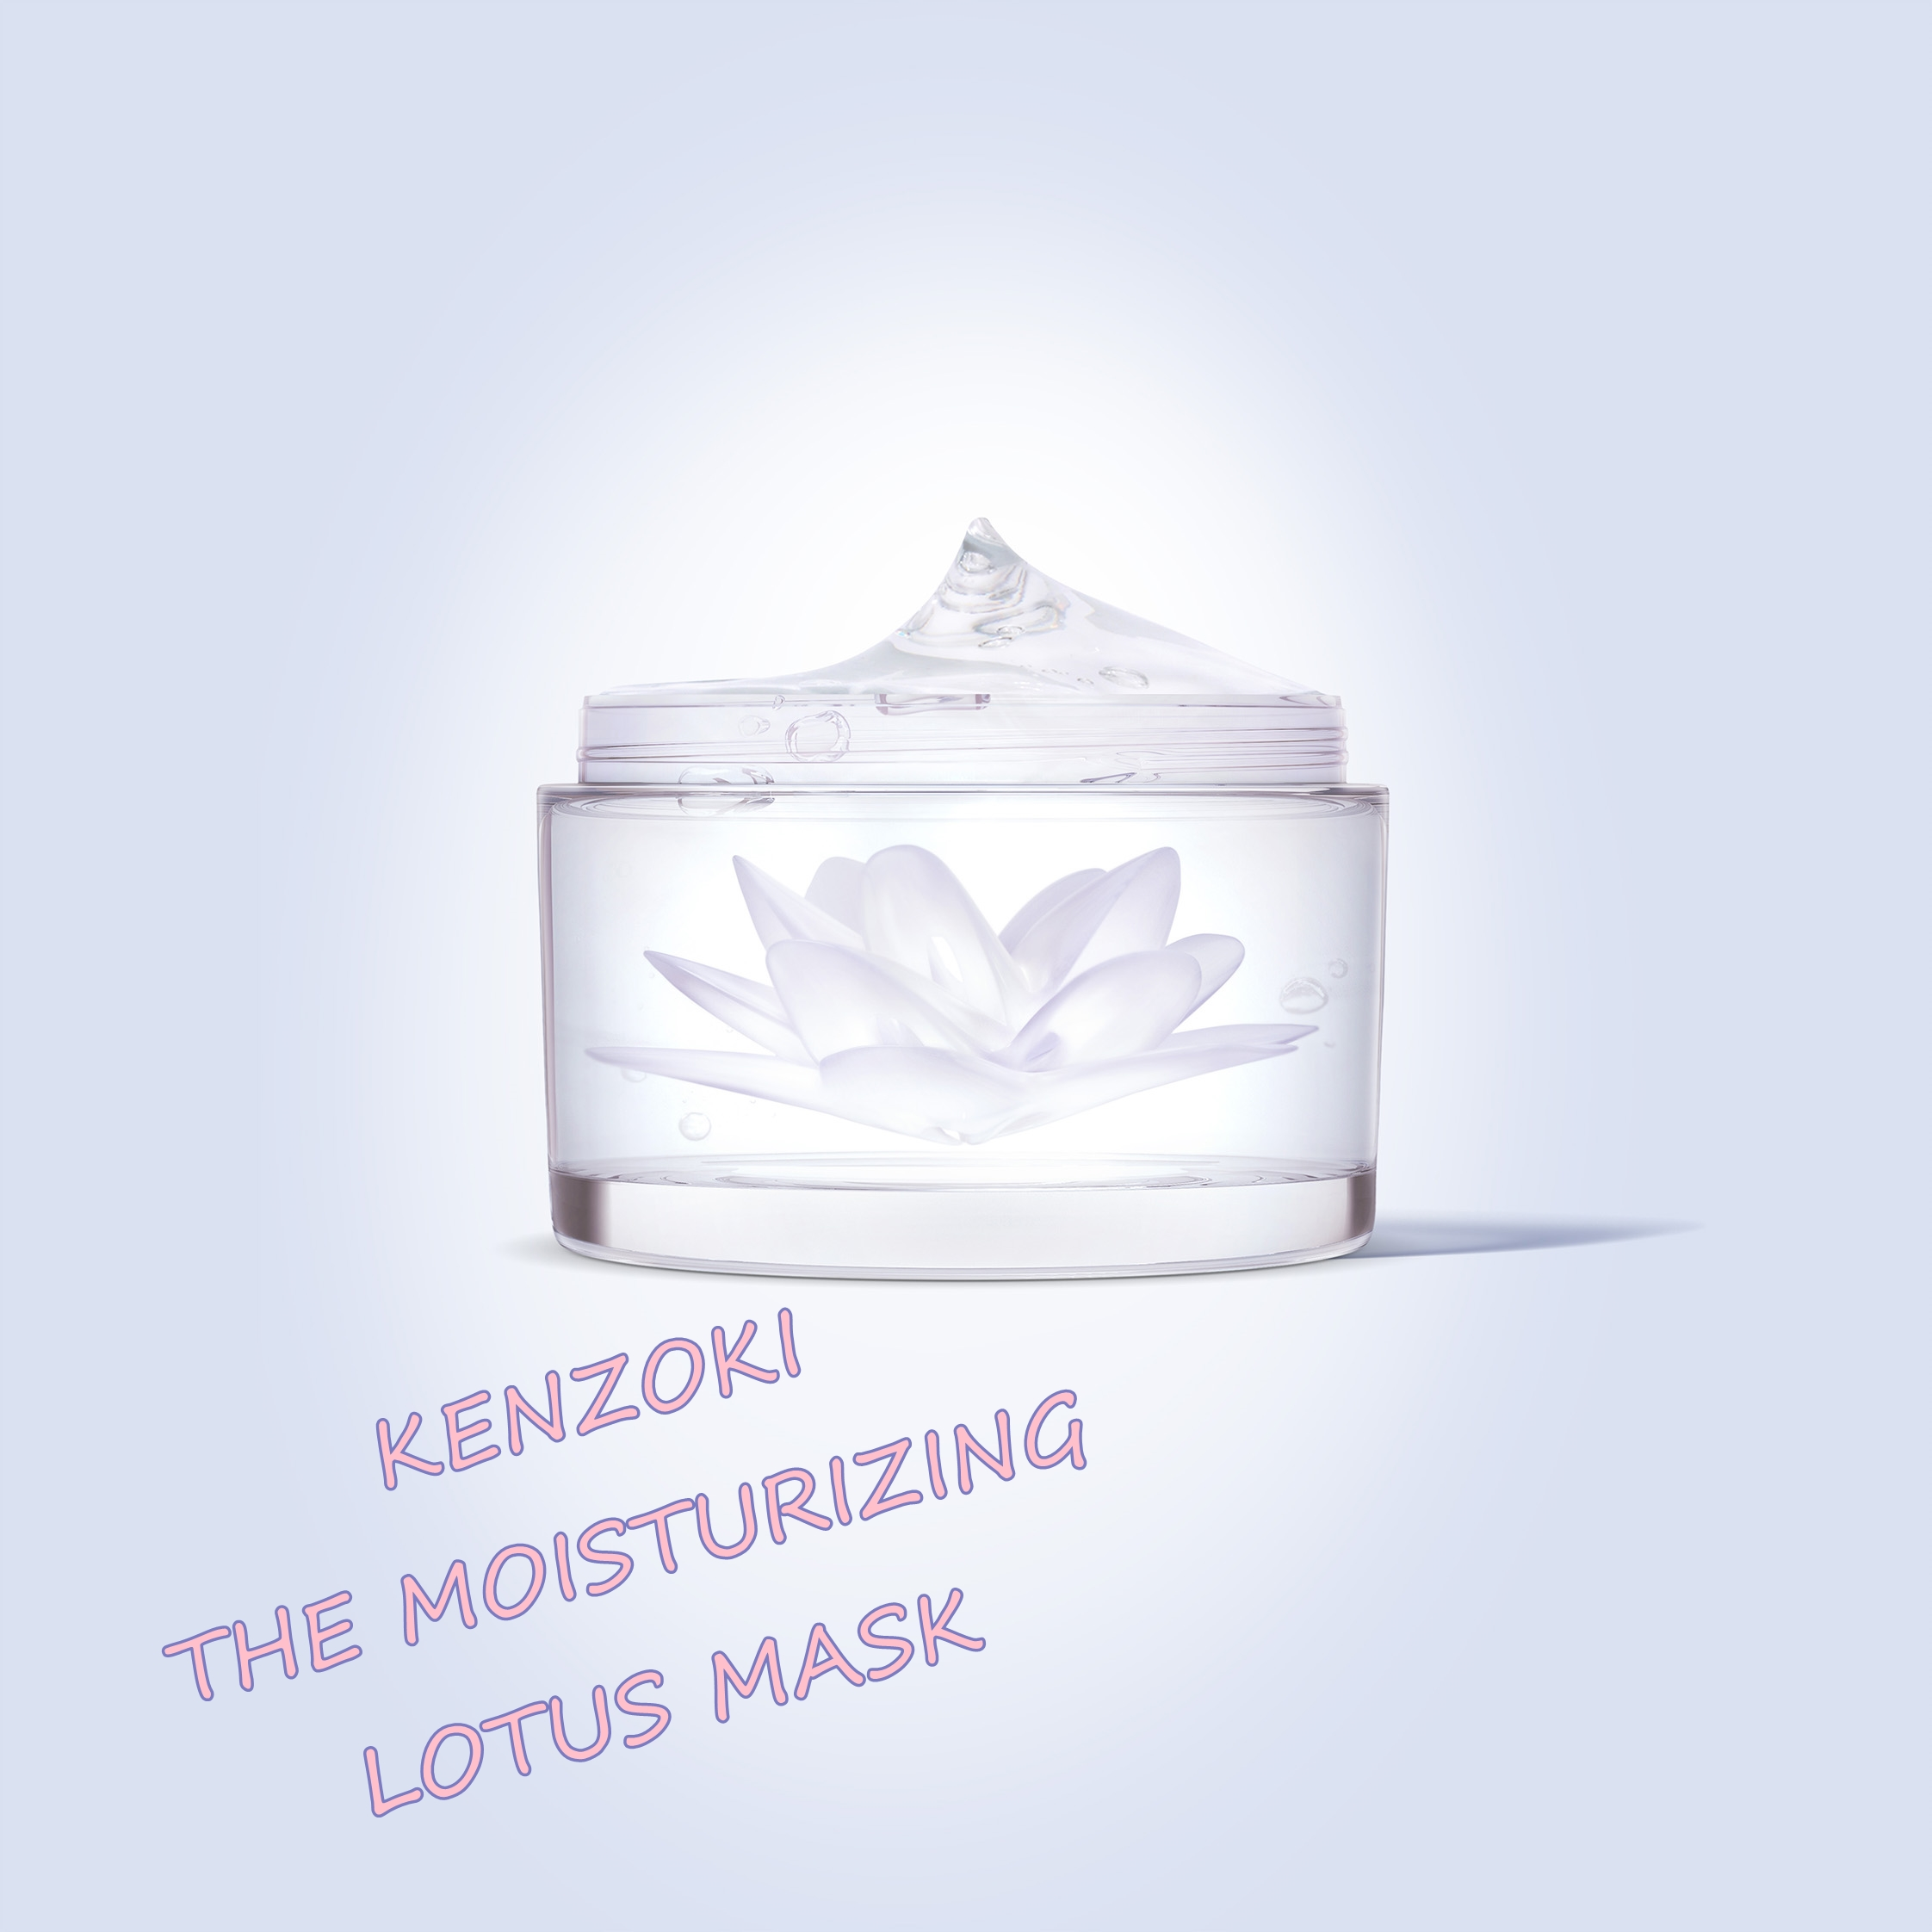 01 KENZOKI THE MOISTURIZING LOTUS MASK